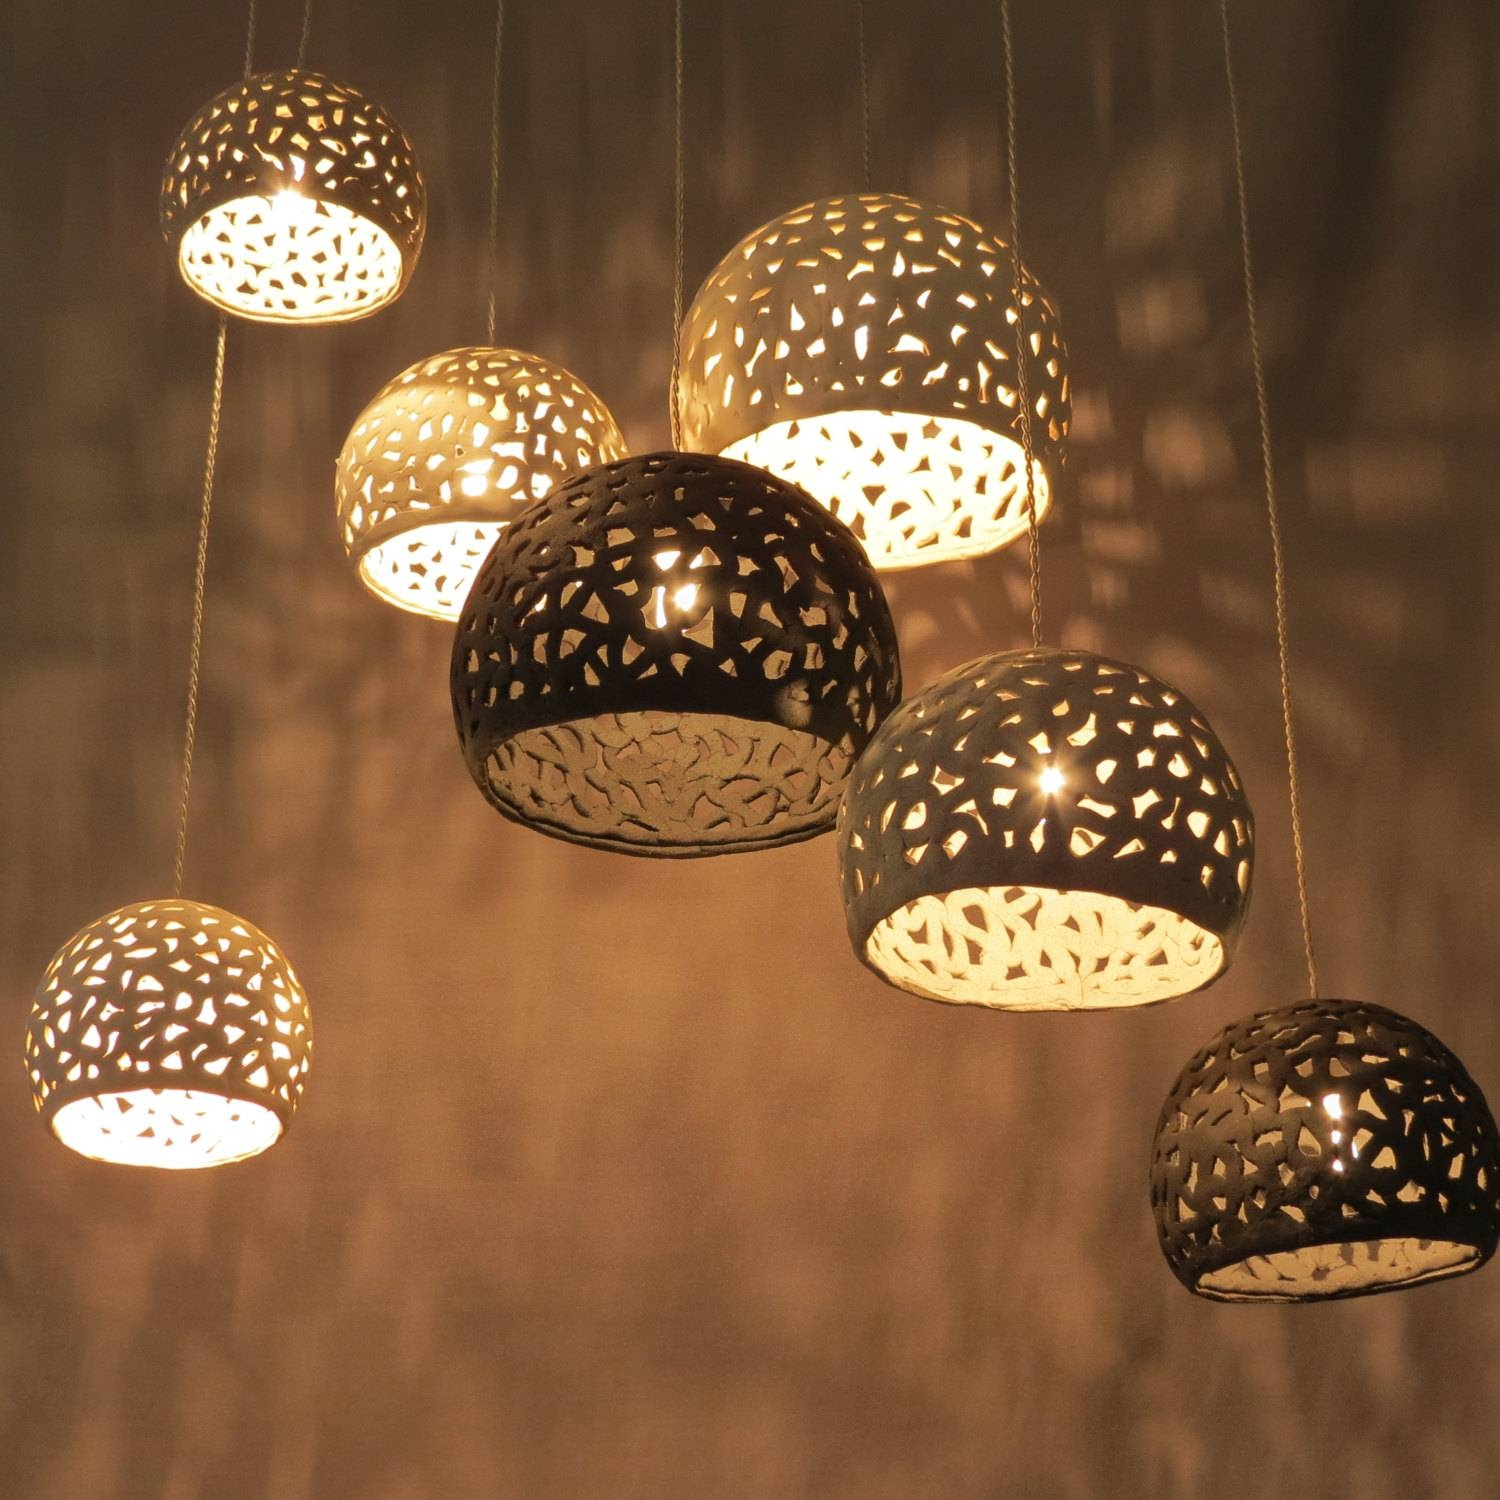 Lighting. Lighting Hanging Chandelier. 7 Ceiling Shades. pertaining to Shell Light Shades Pendants (Image 7 of 15)